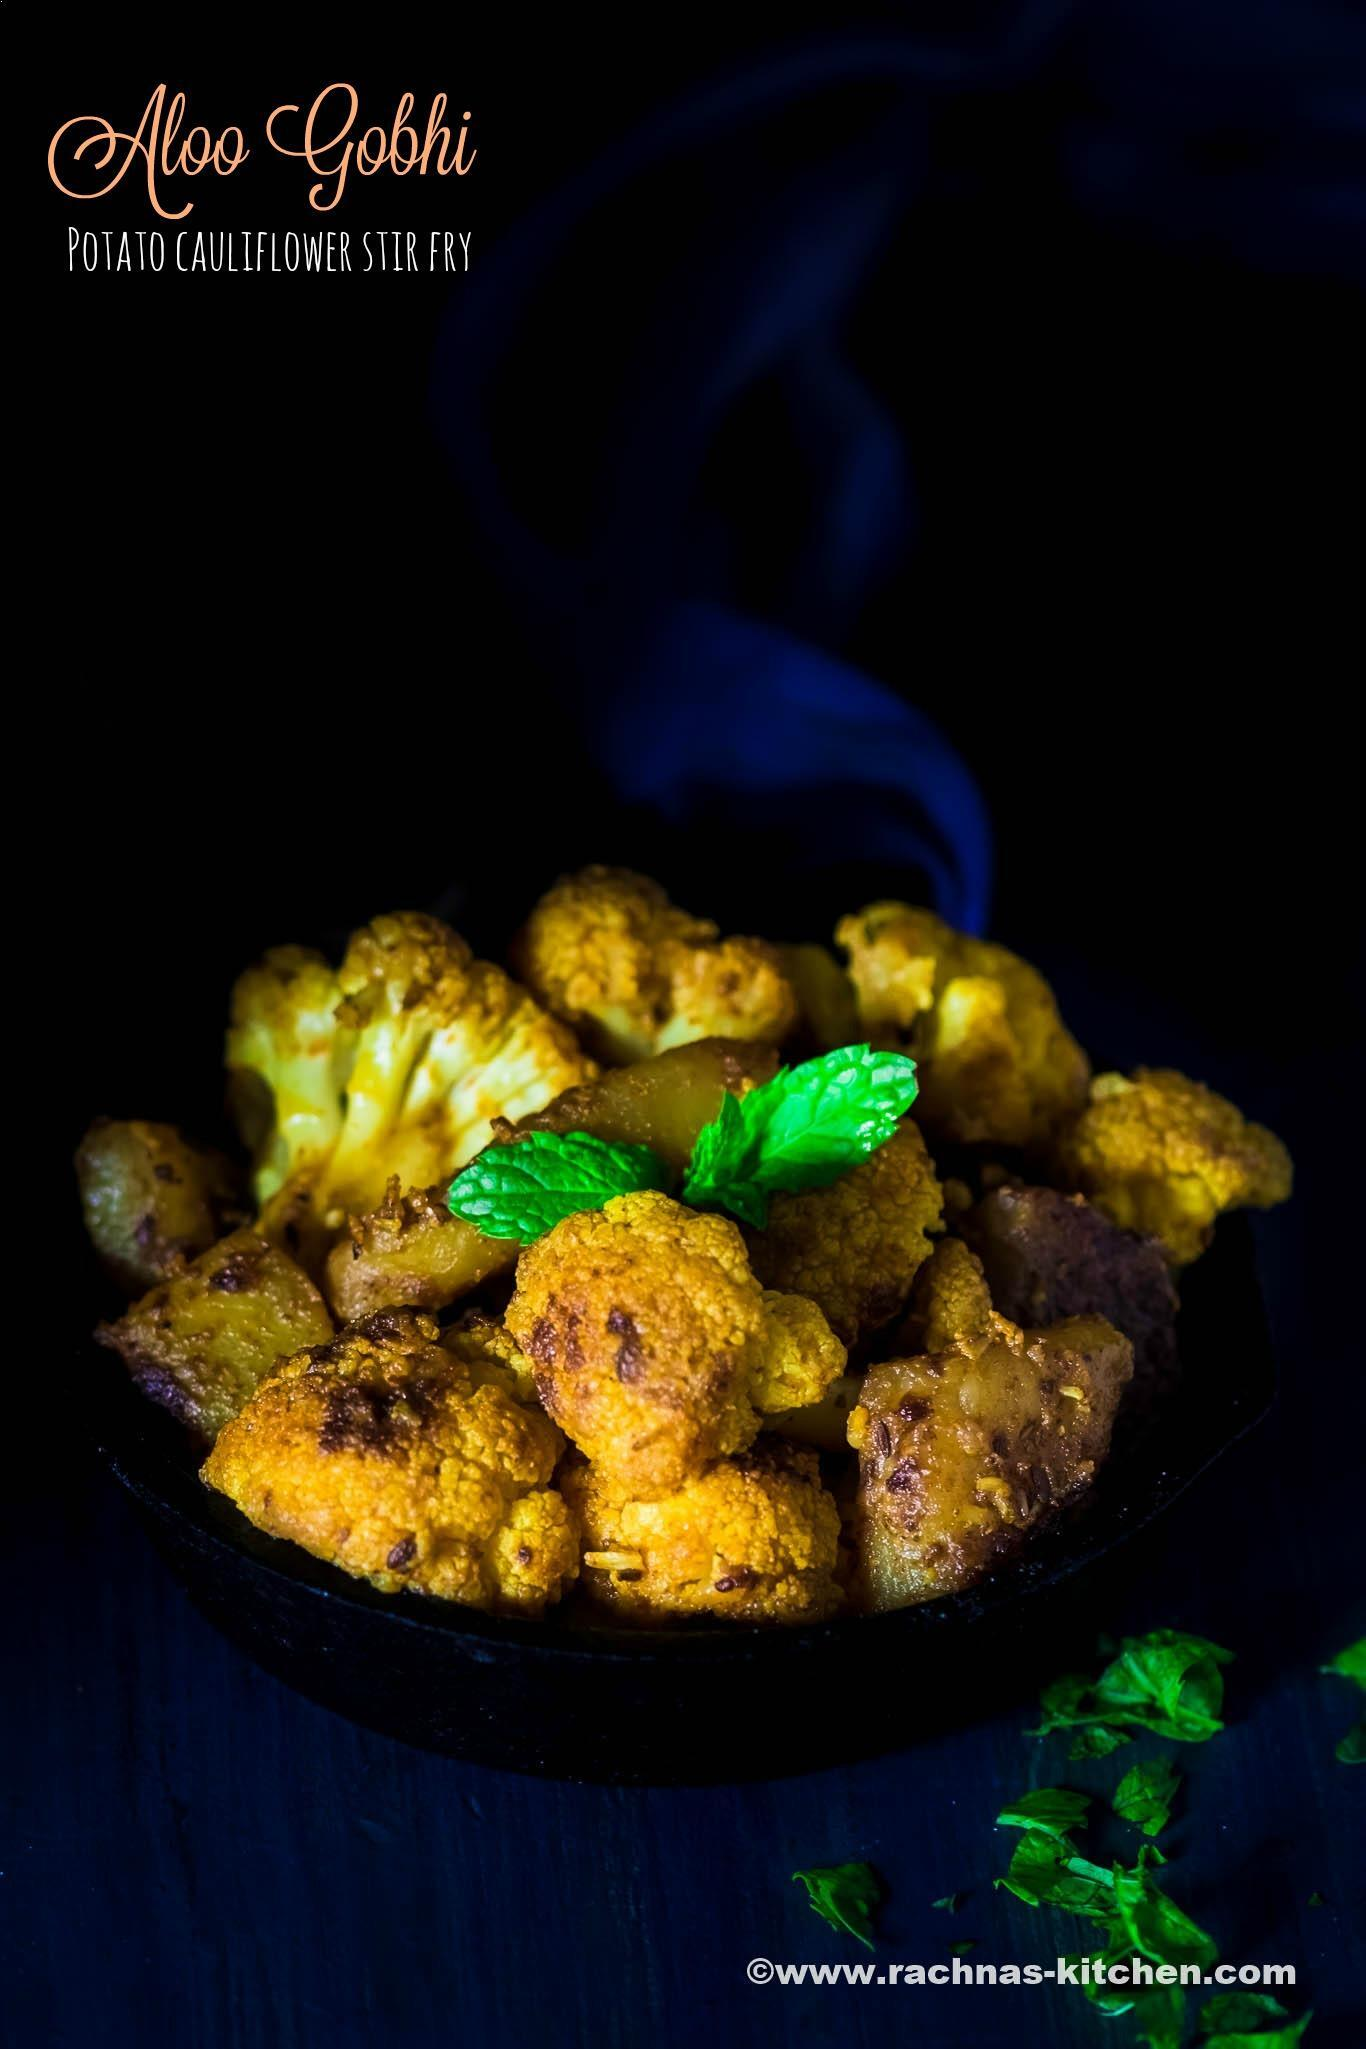 Aloo Gobi Recipe, How To Make Aloo Gobi Dry Recipe